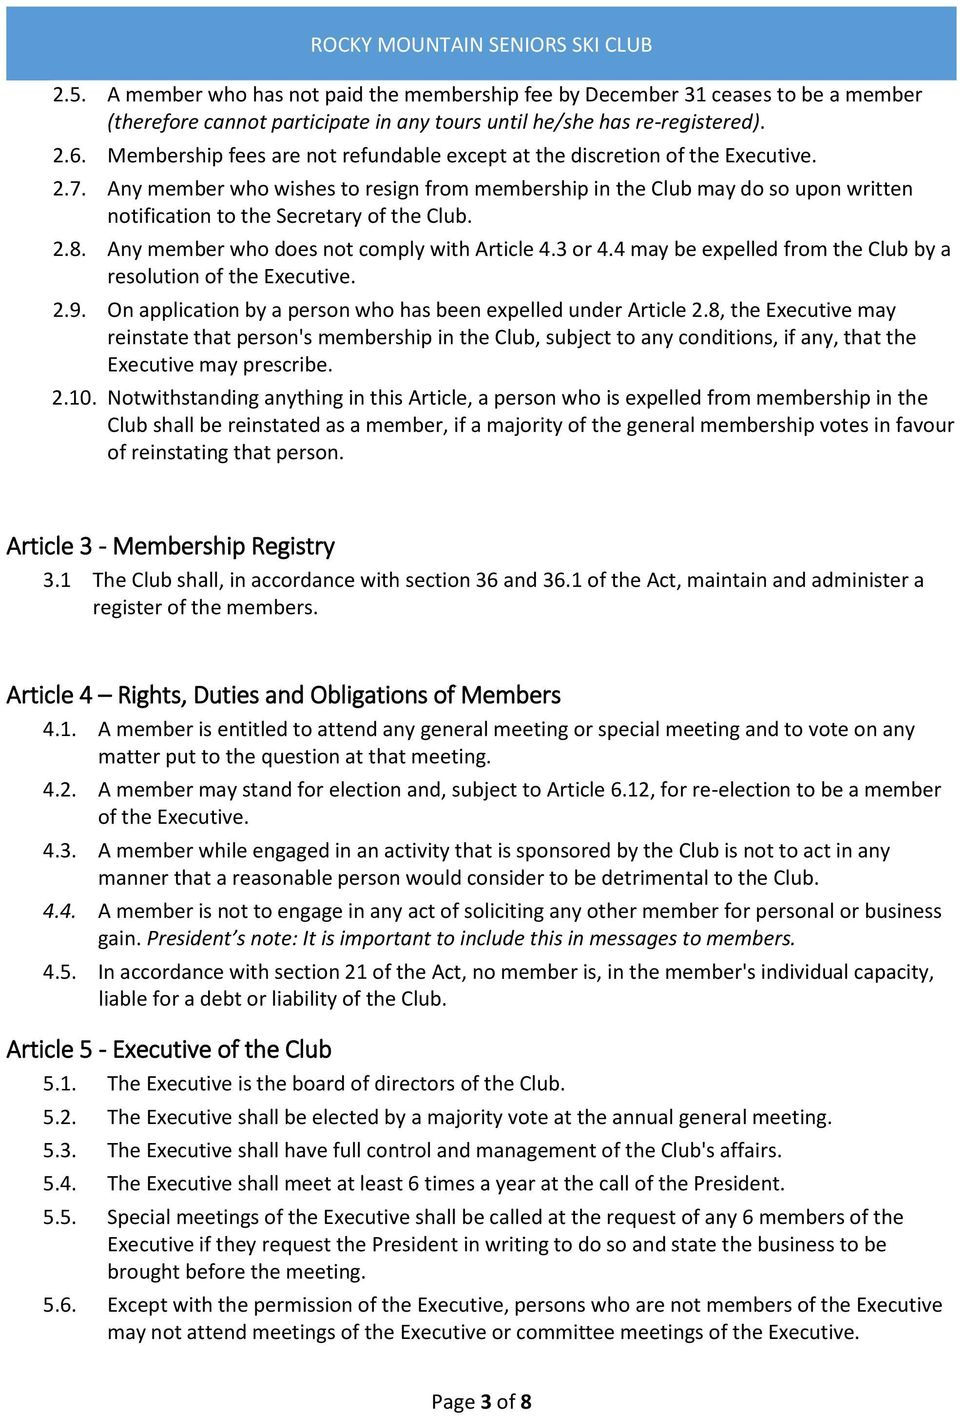 Any member who wishes to resign from membership in the Club may do so upon written notification to the Secretary of the Club. 2.8. Any member who does not comply with Article 4.3 or 4.